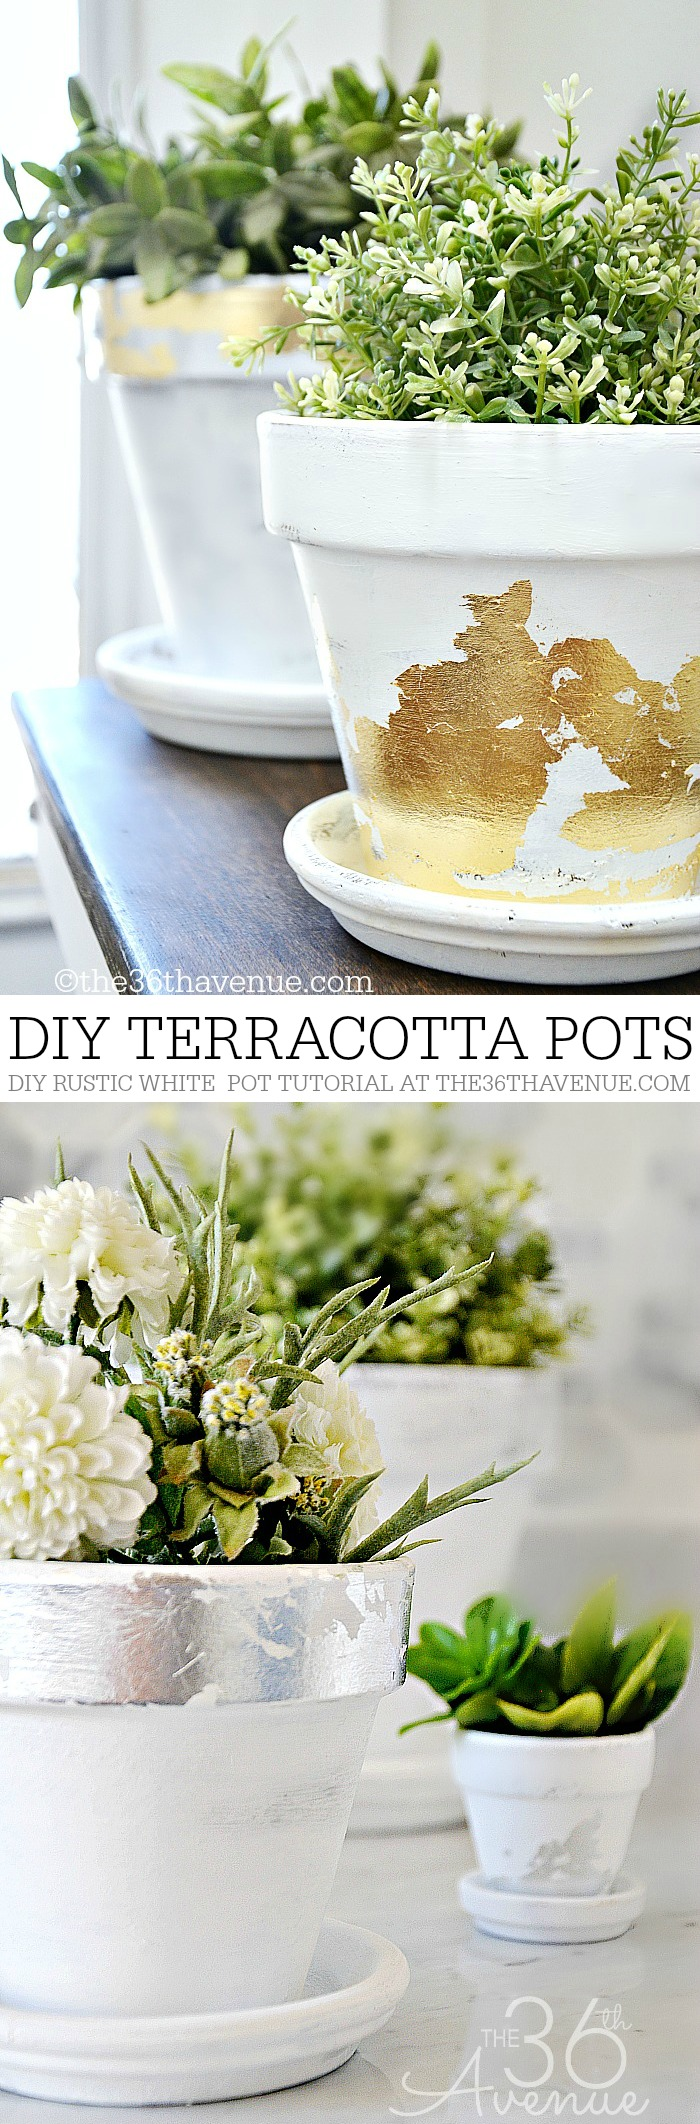 DIY Home Decor - Terracotta Pots Pin It at the36thavenue.com